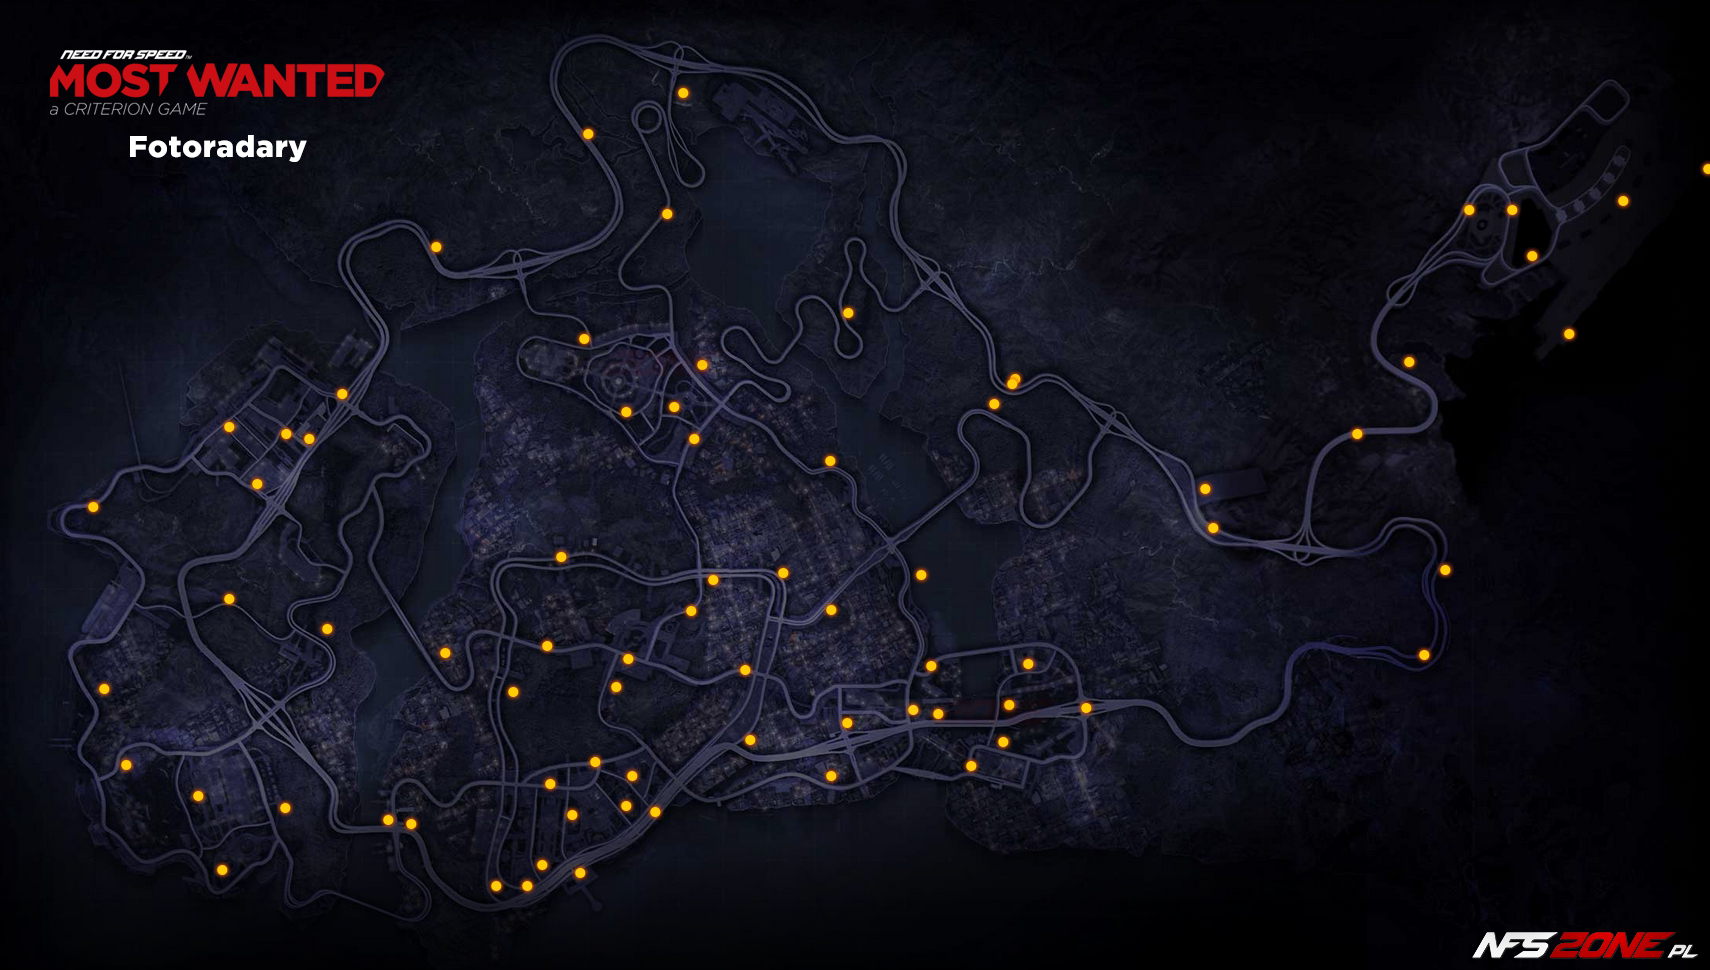 NFS - Need for Speed Most Wanted (2012) - mapa fotoradary Fairhaven - Speed Cameras Map